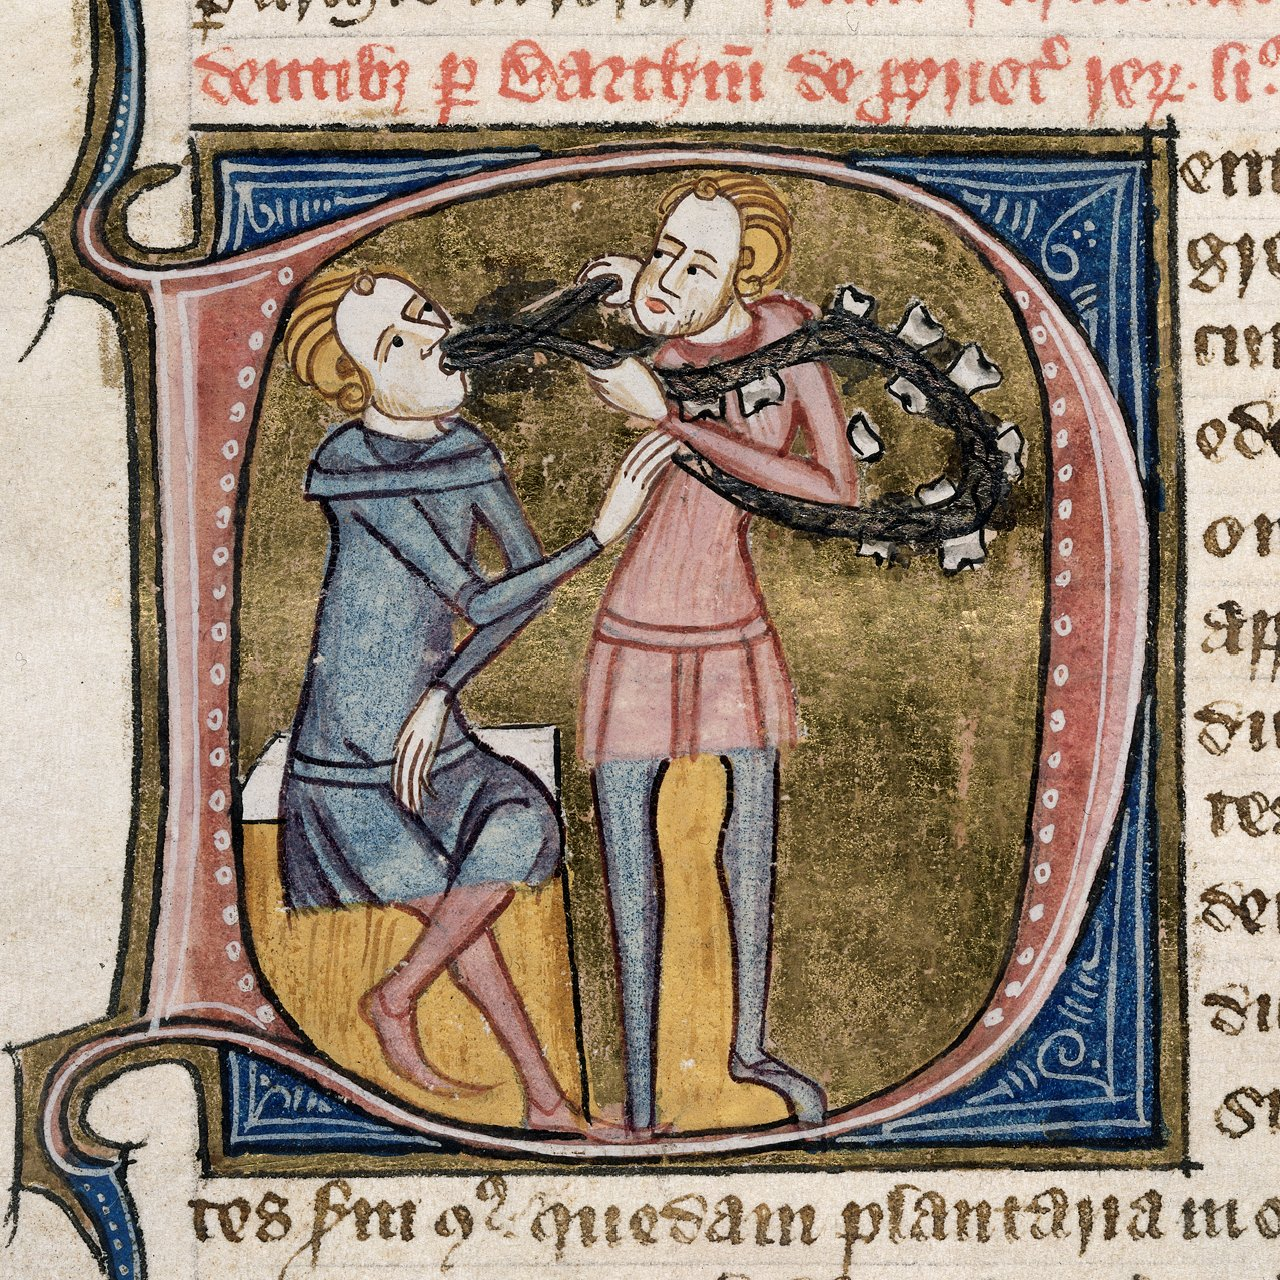 https://upload.wikimedia.org/wikipedia/commons/0/0b/Medieval_dentistry.jpg